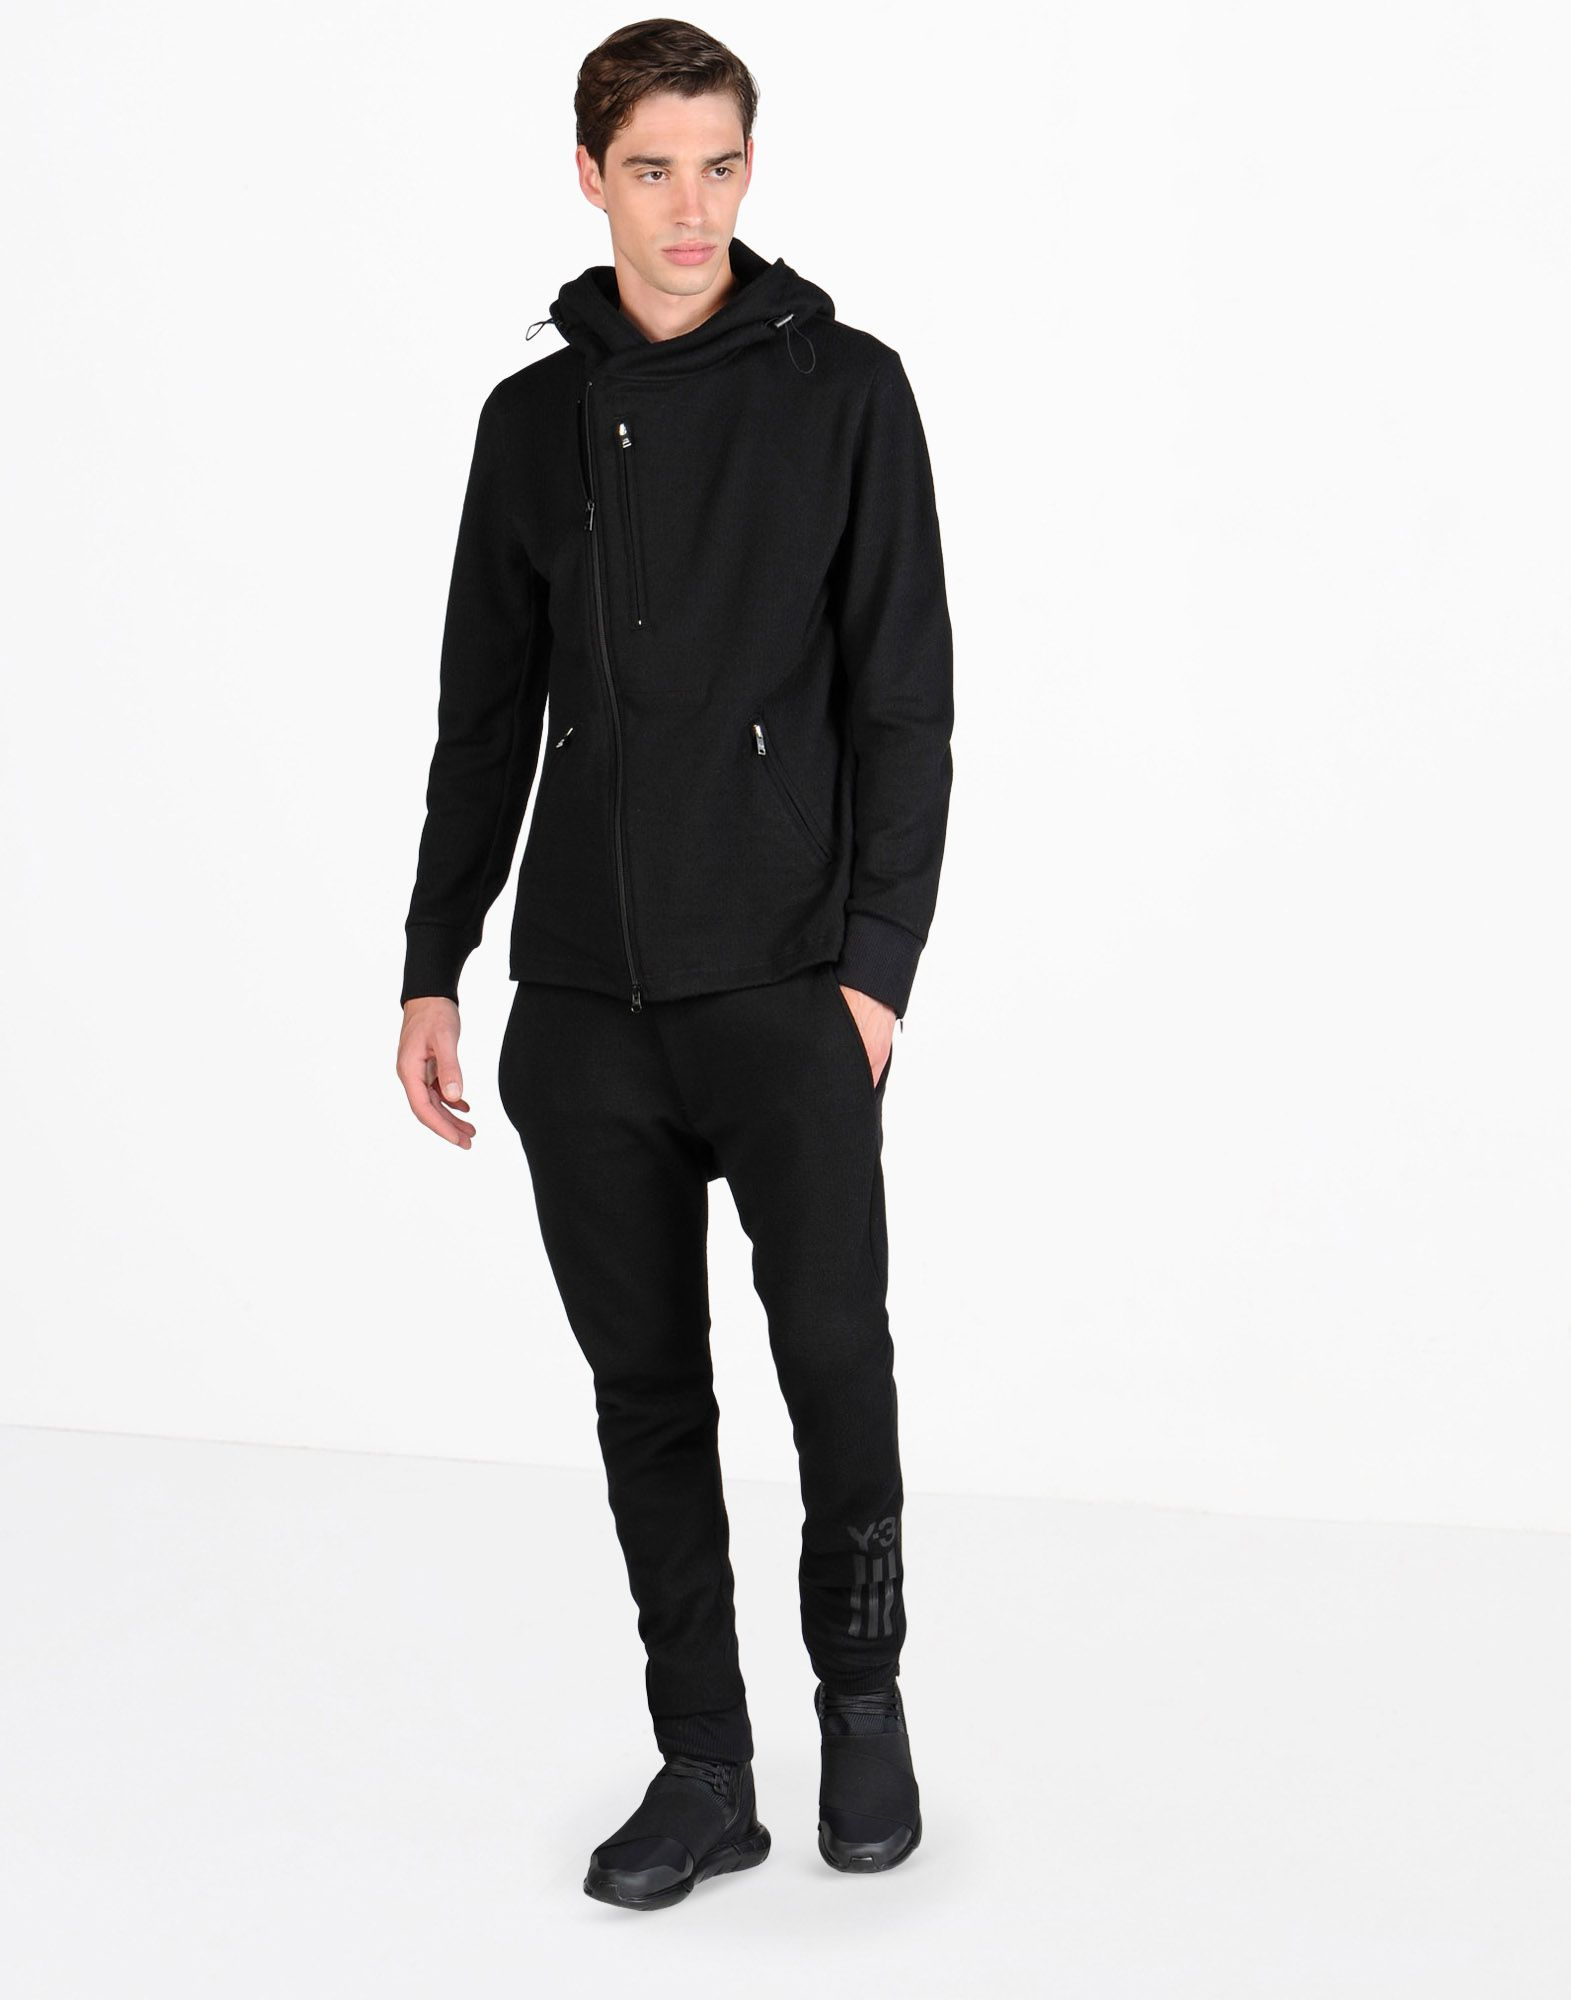 Y-3, Wool Jersey Pant